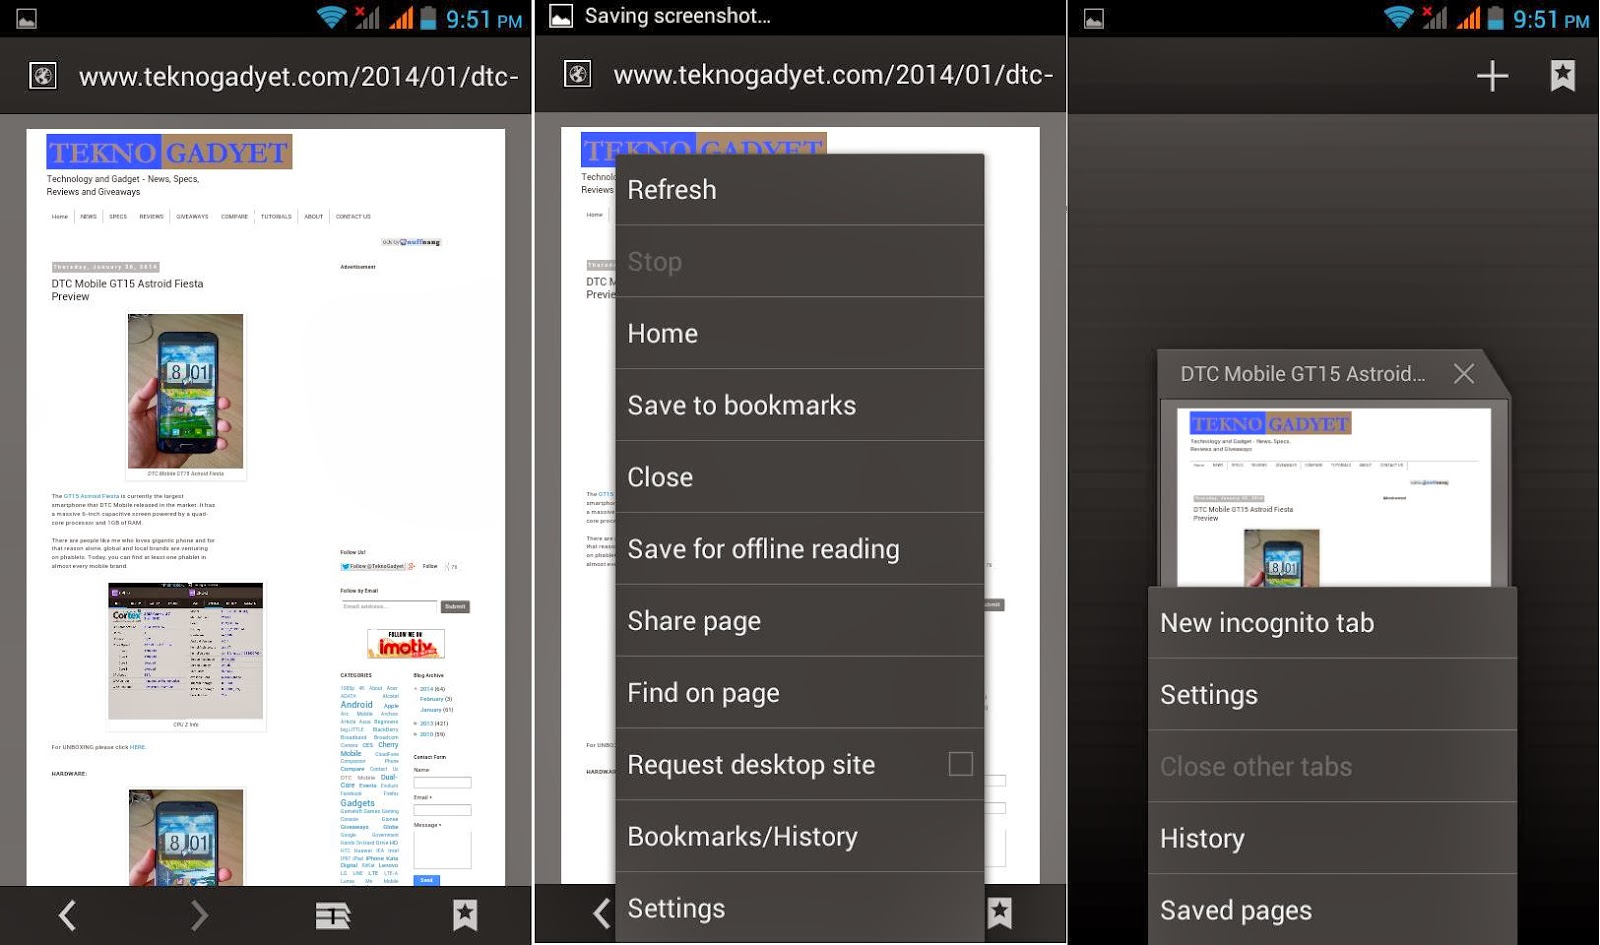 DTC Mobile GT15 Astroid Fiesta Browser